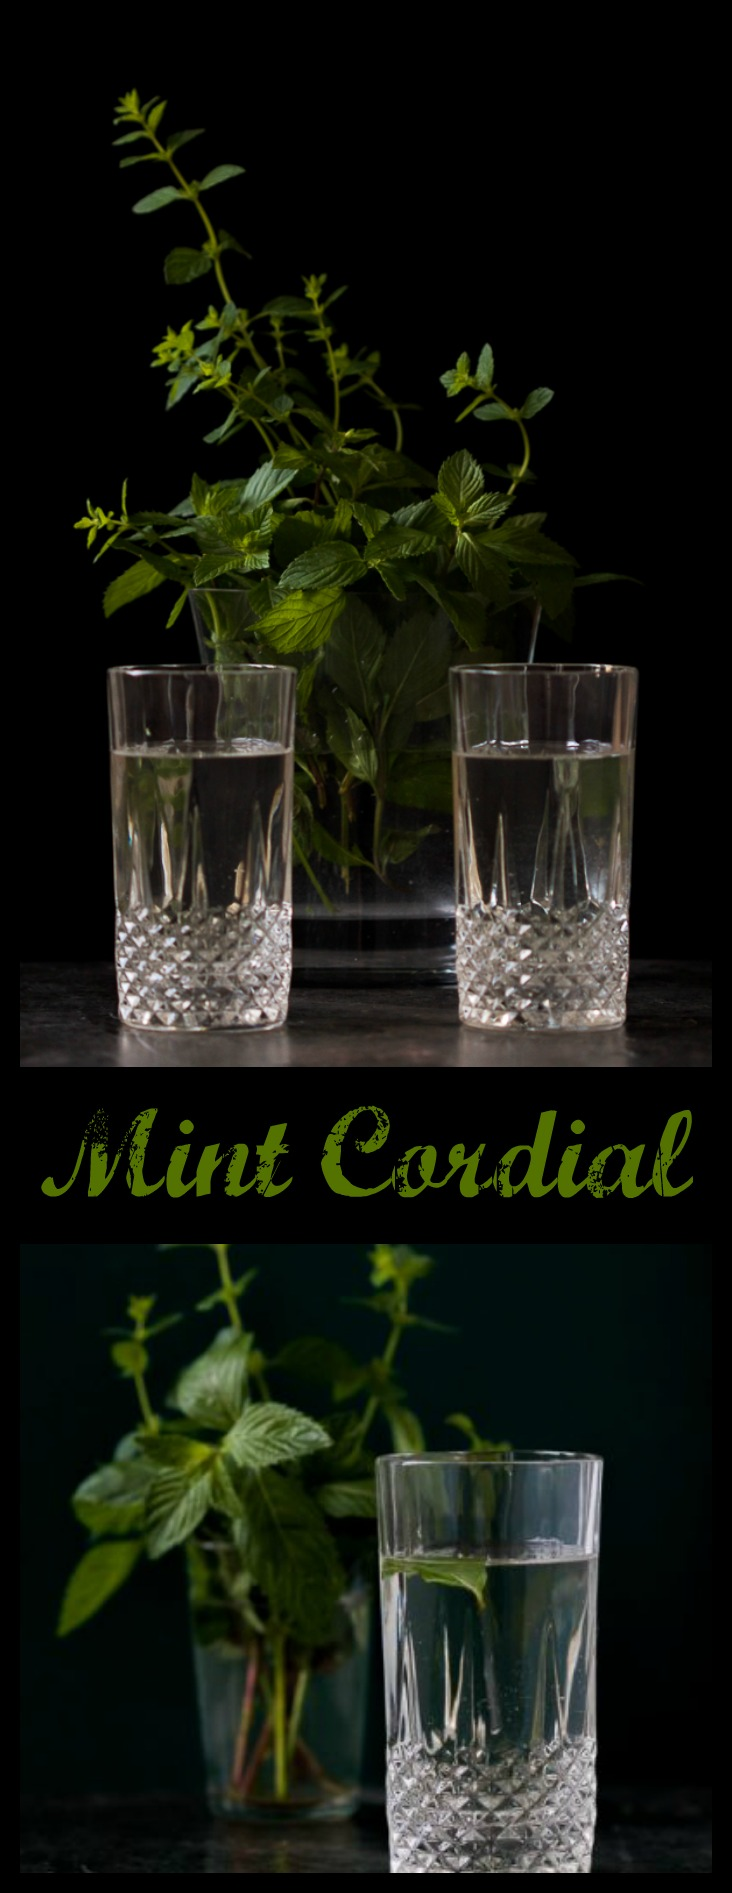 Is there anything more revitalizing on a hot day than a mint drink (in our case mint cordial)? This syrup will change the way you make your juice, mojito, and more. Mint, water, sugar and citric acid are all you need for this sip from heaven.